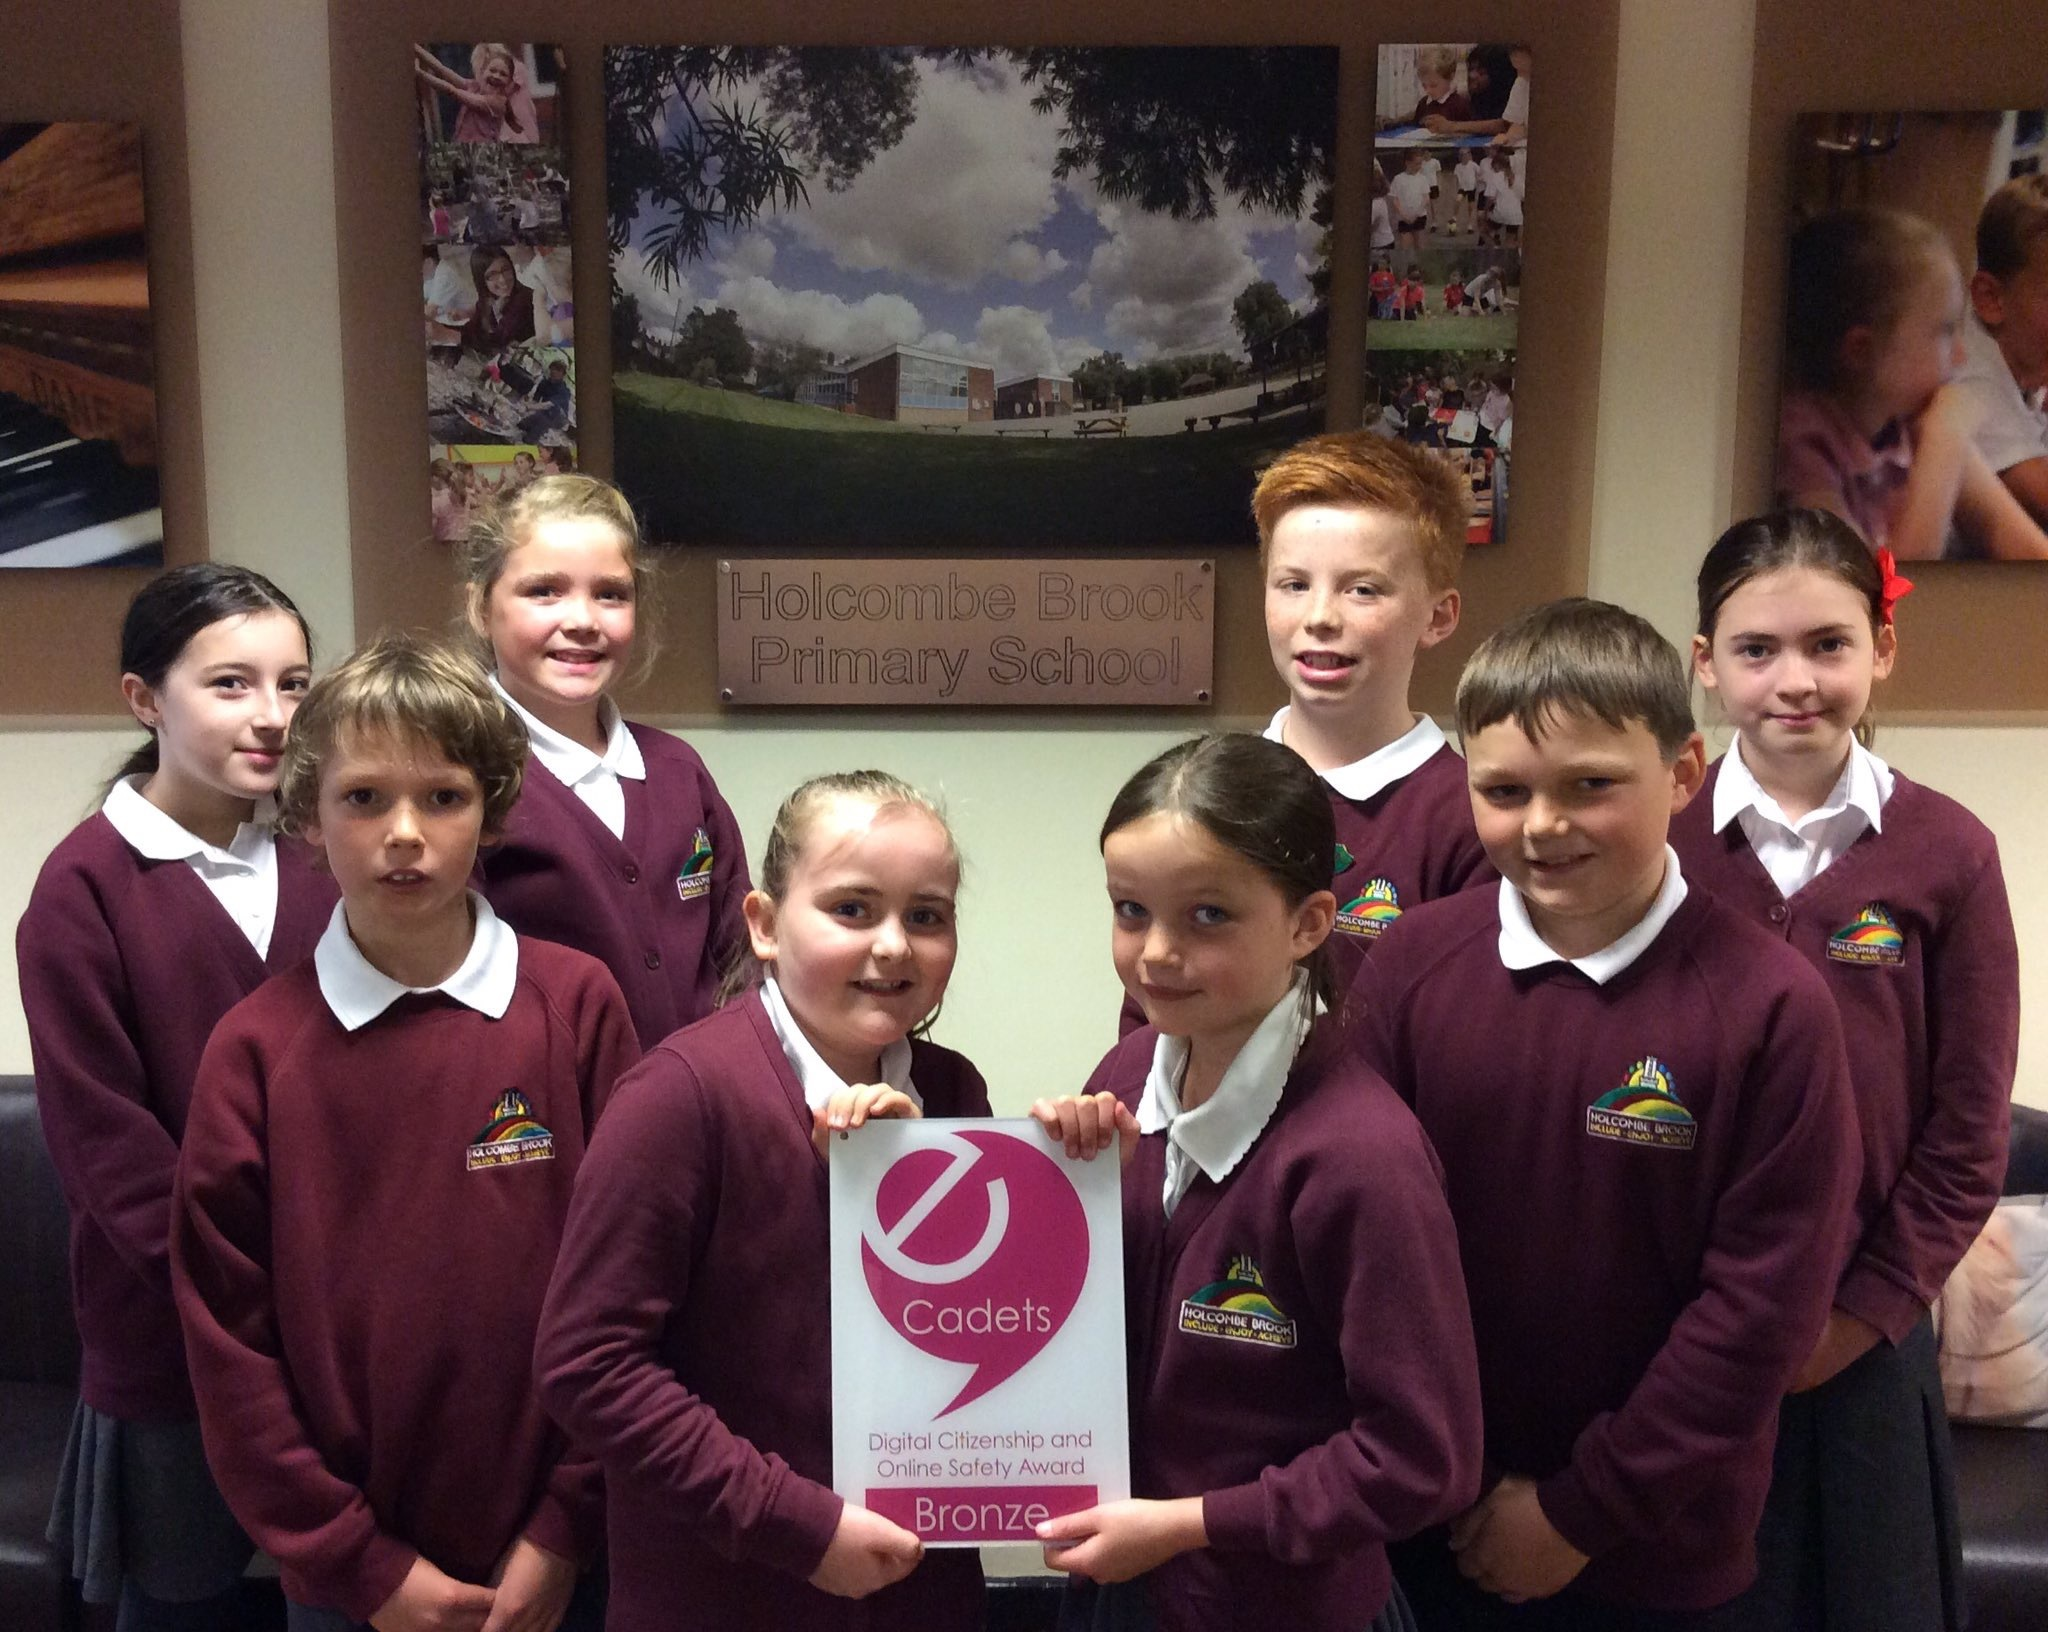 SUCCESS: Pupils at Holcombe Brook Primary School have won National Online Safety Award